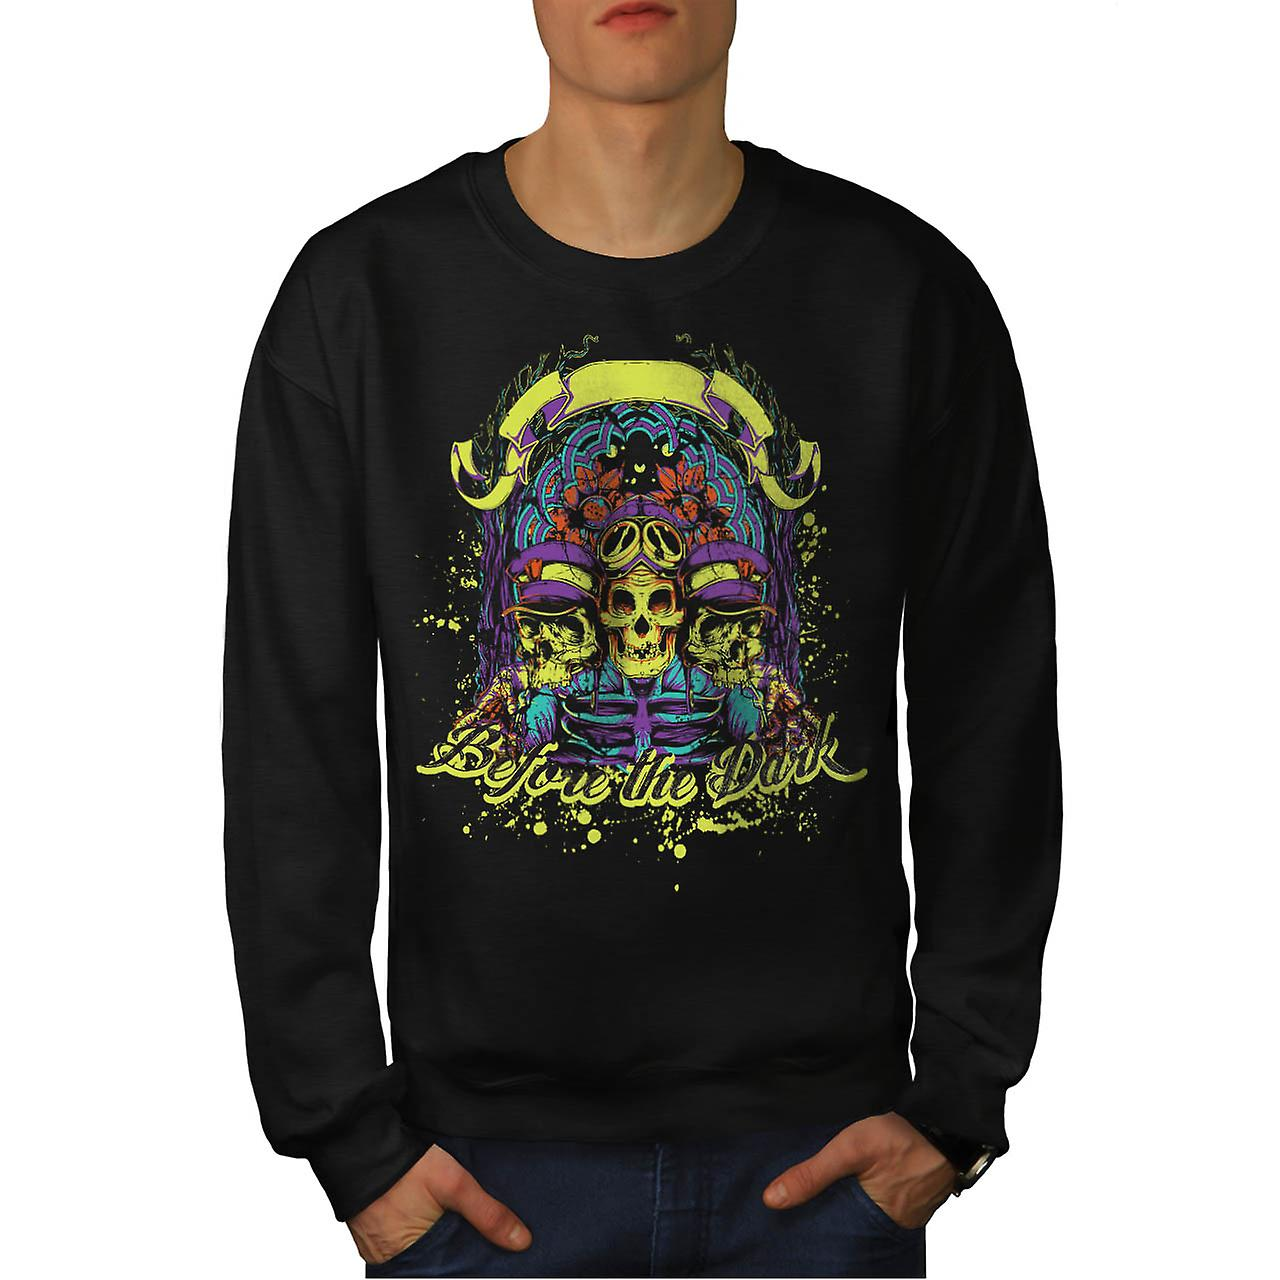 Before Dark Skull Biker Skull Ride Men Black Sweatshirt | Wellcoda